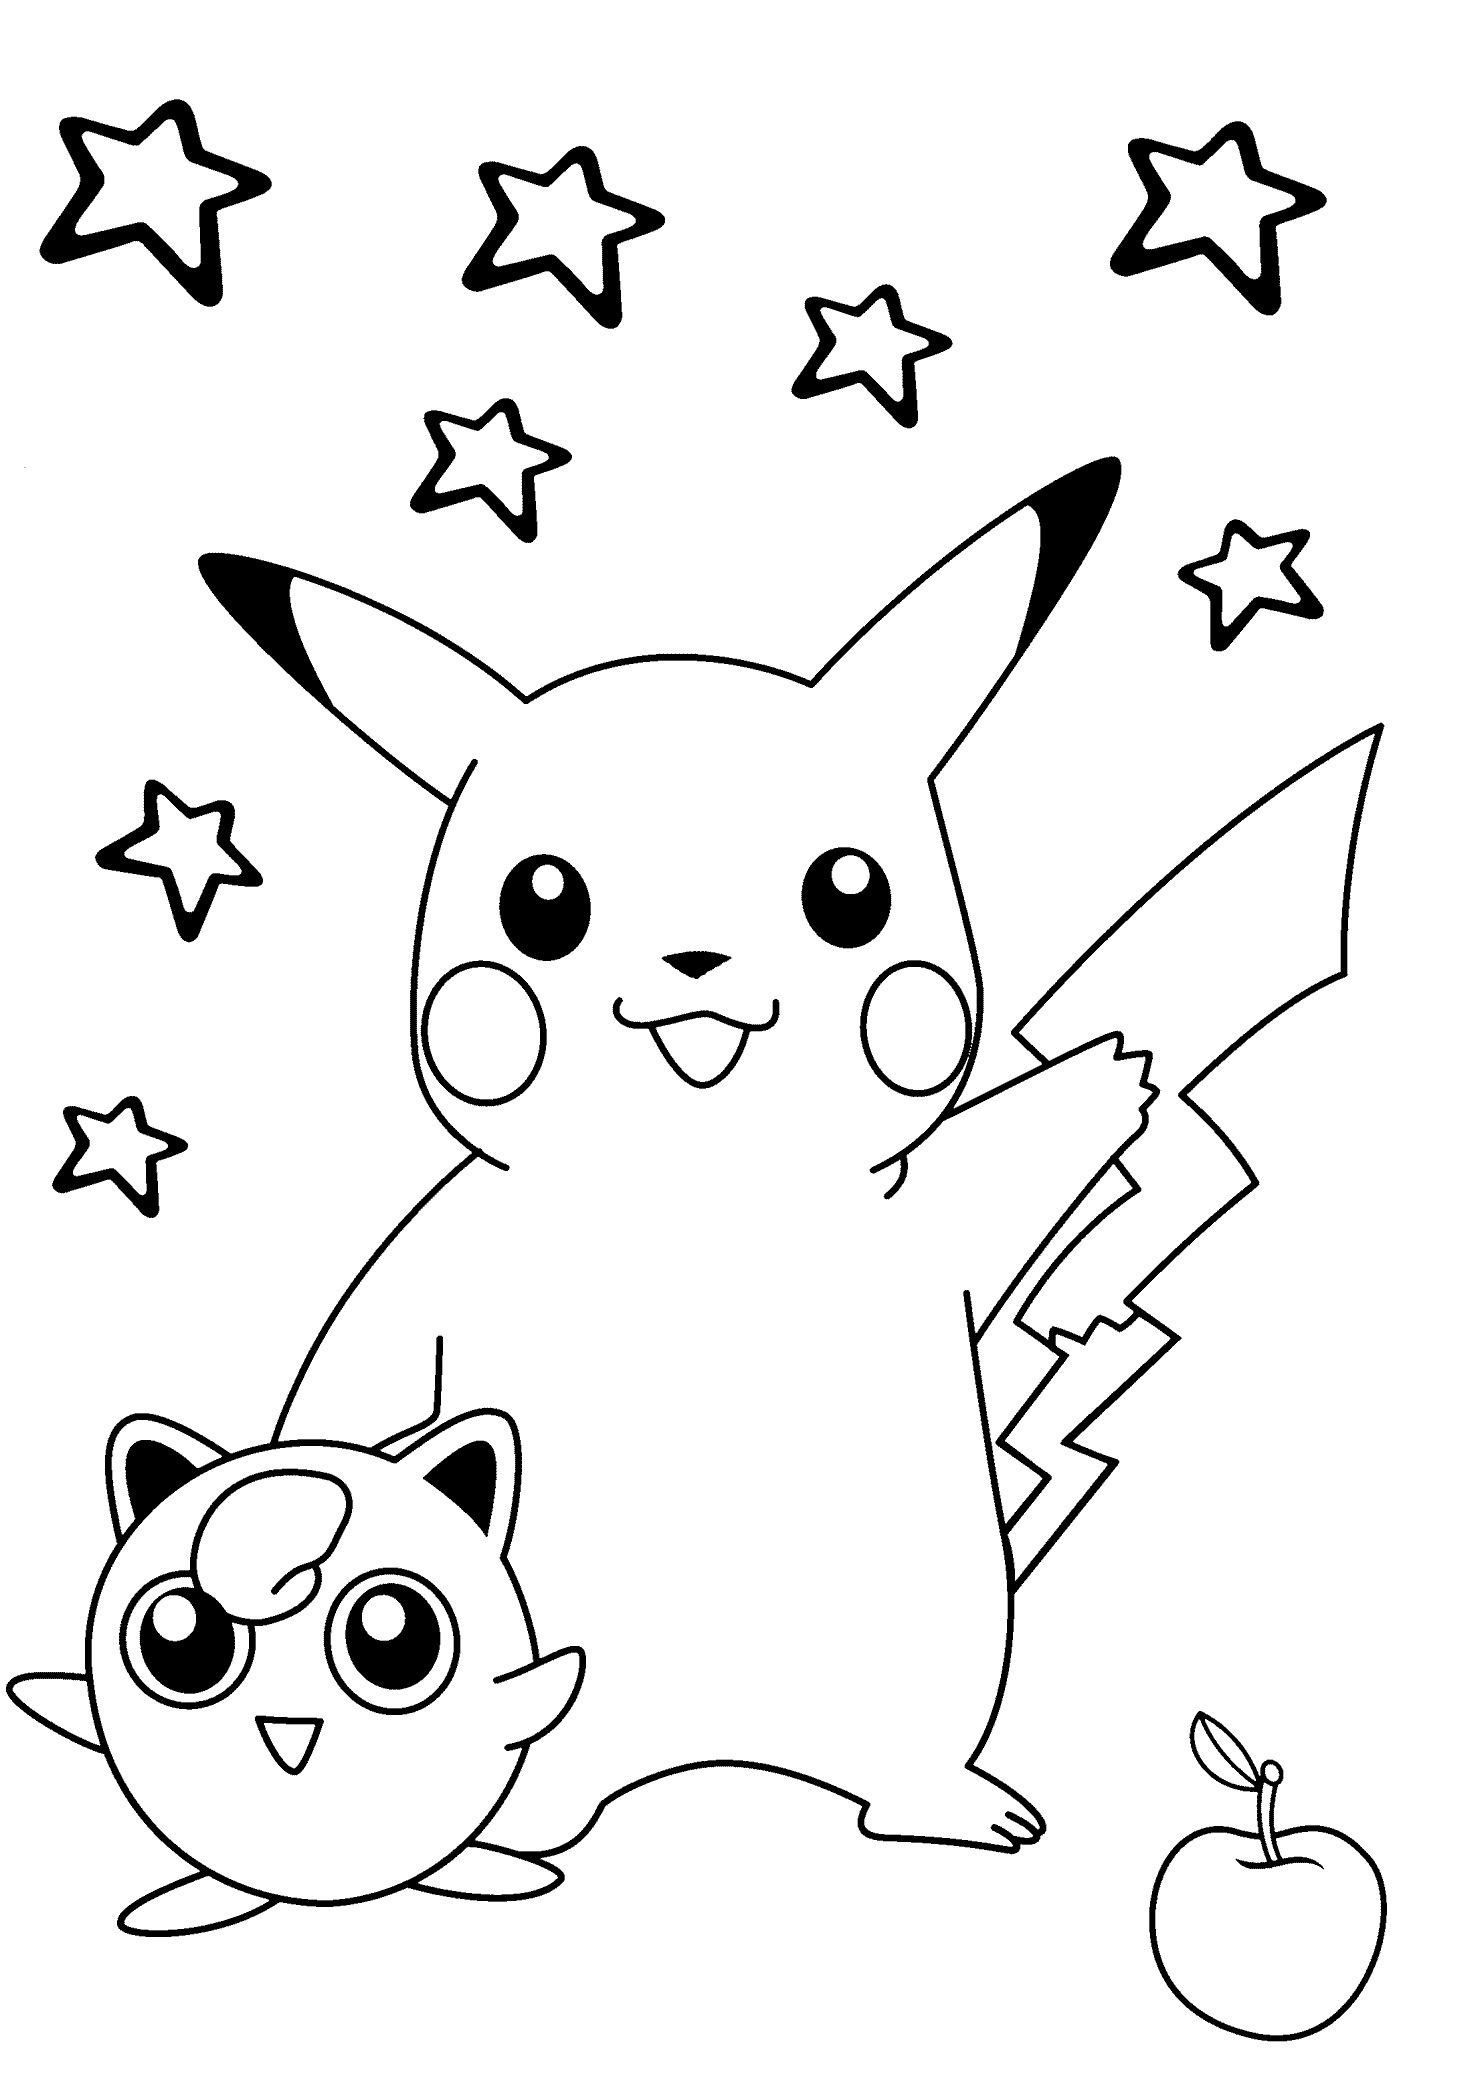 Pokemon Jigglypuff Coloring Pages Pikachu Coloring Page Pokemon